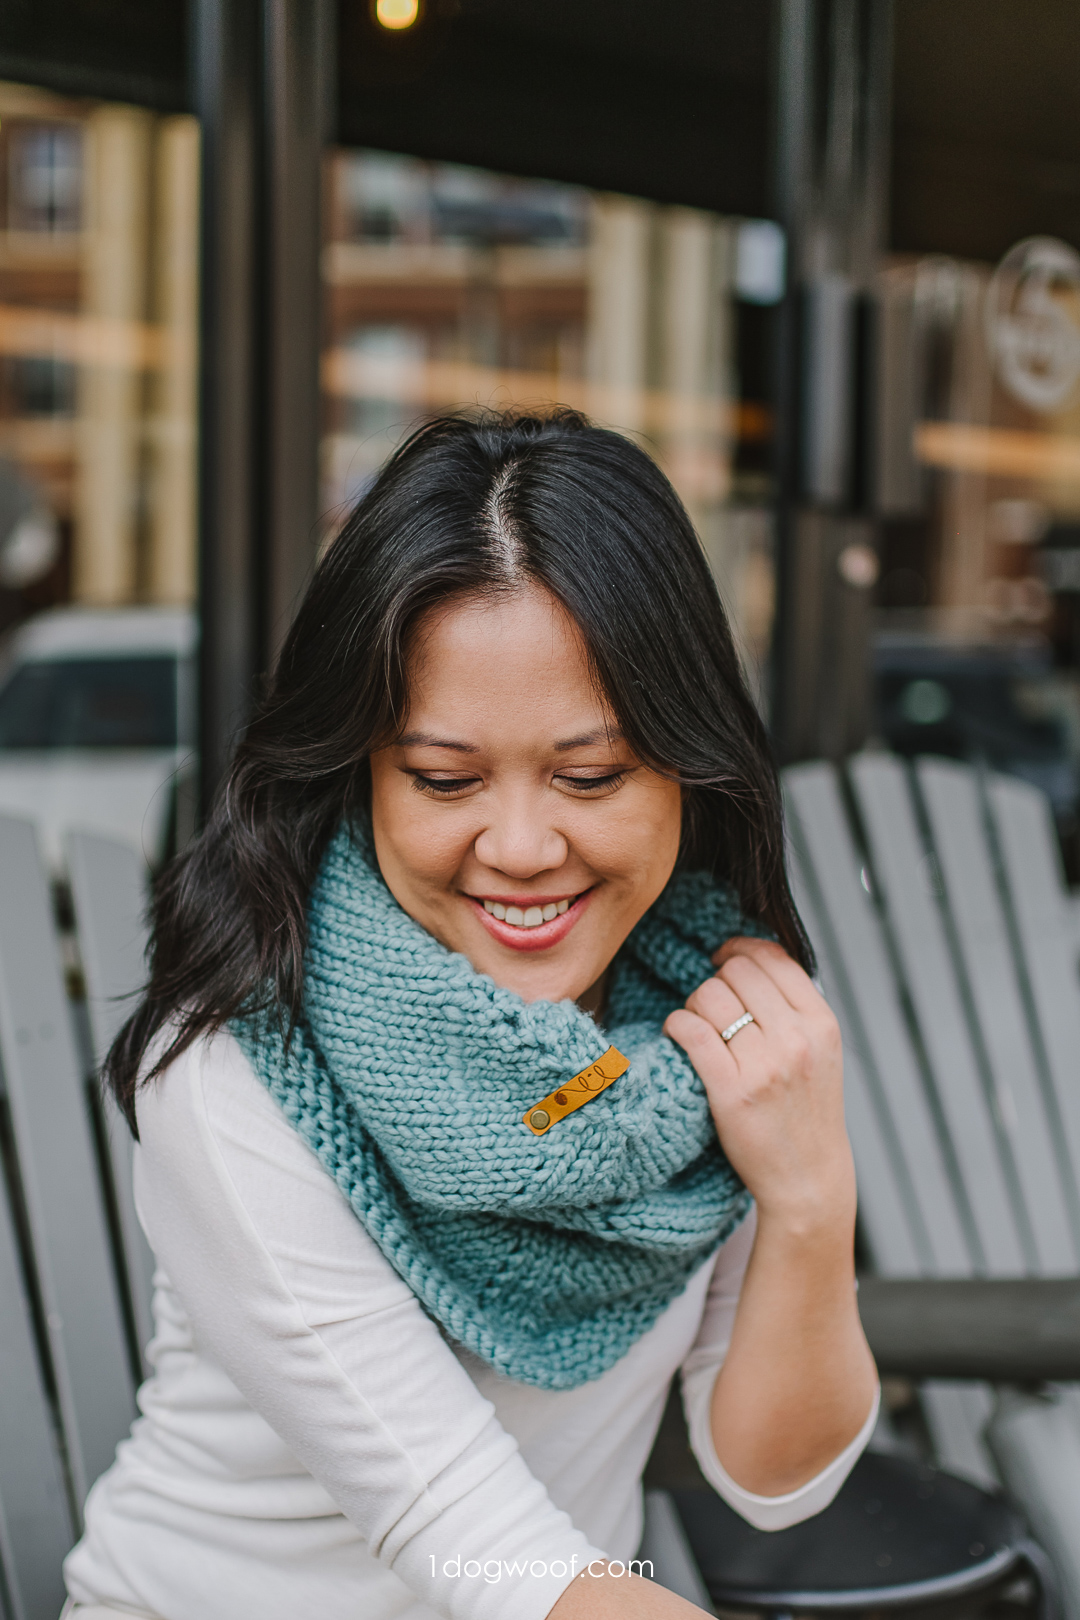 Cactus Cowl Knitting Pattern: A Quick 2 Skein Project